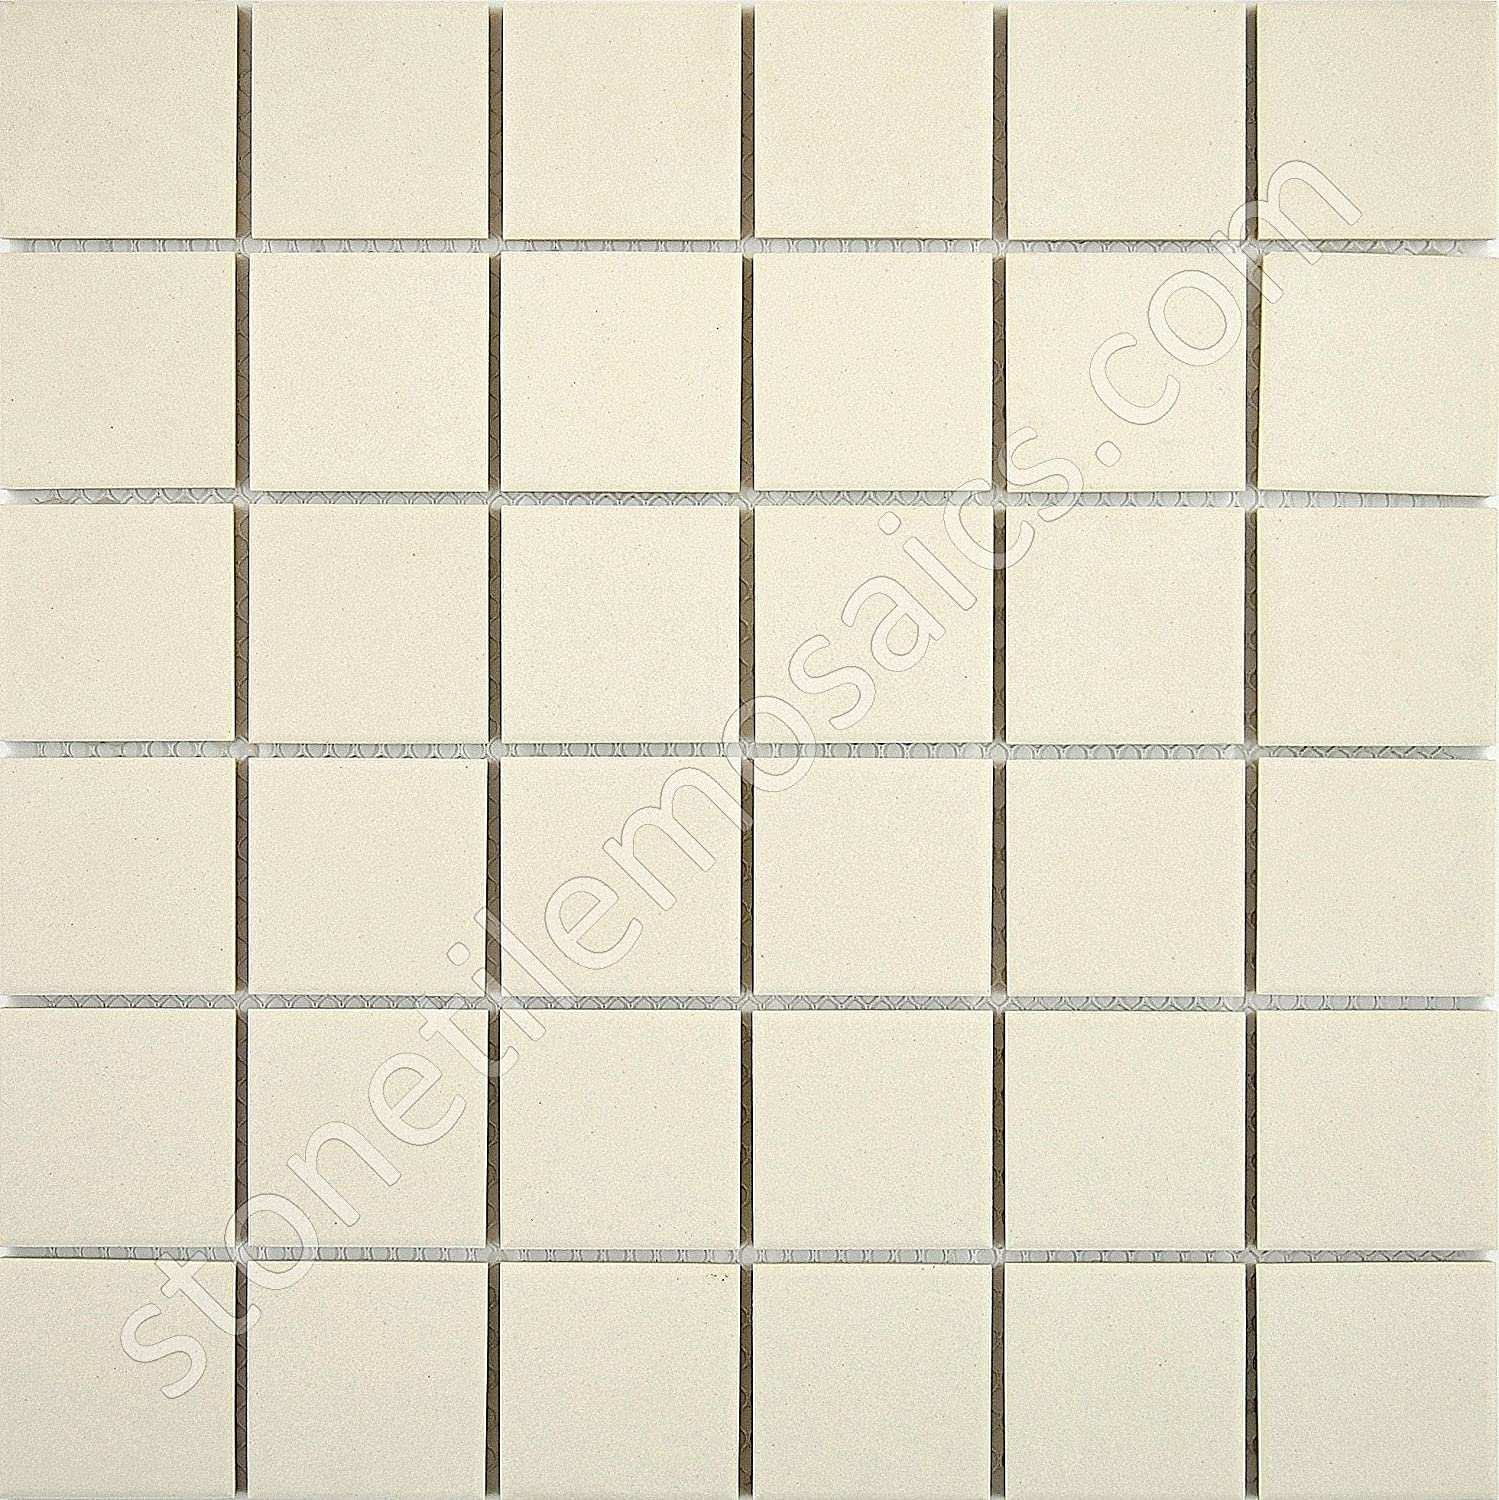 White unglazed porcelain mosaic square 2x2 inch porcelain floor white unglazed porcelain mosaic square 2x2 inch porcelain floor wall tile 10 pcs10 sq ft per case 1 standard shipping ceramic tiles amazon dailygadgetfo Choice Image